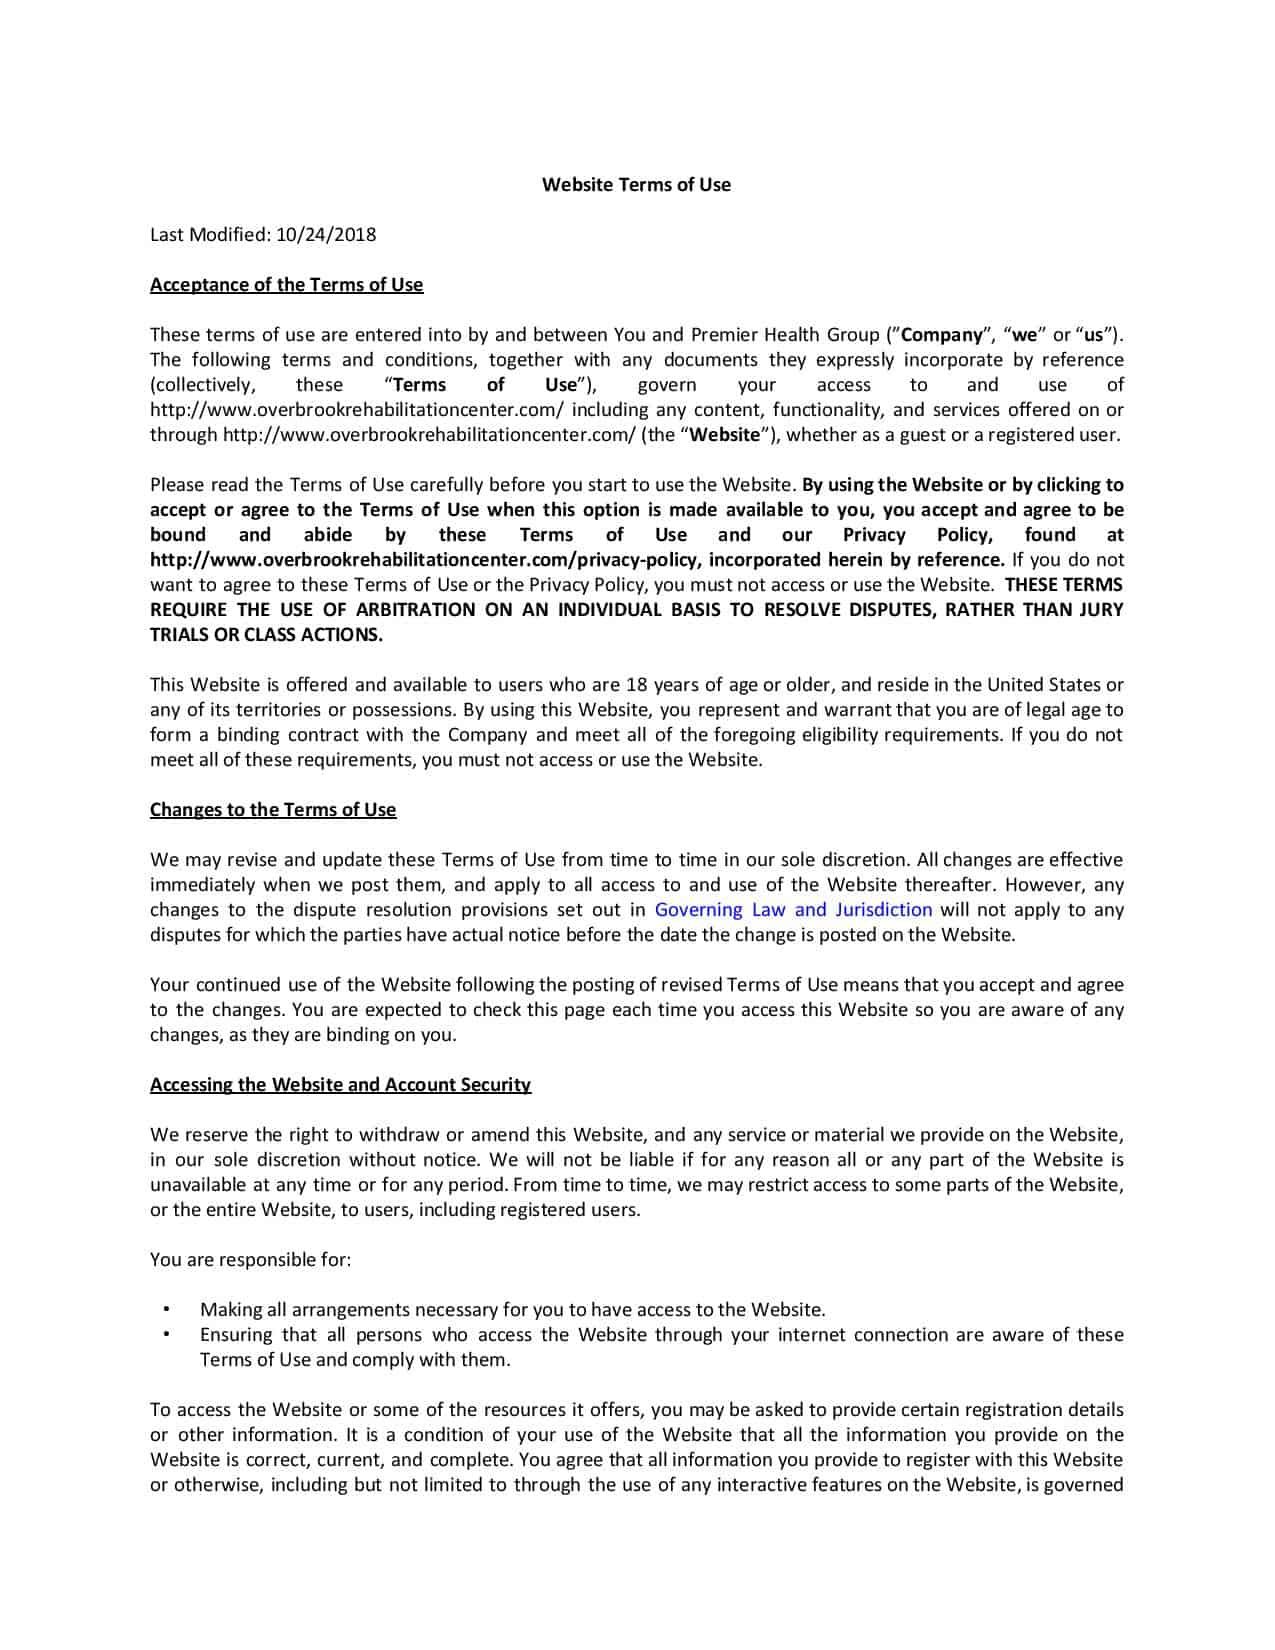 overbrookrehabilitationcenter Terms of Use-page-001